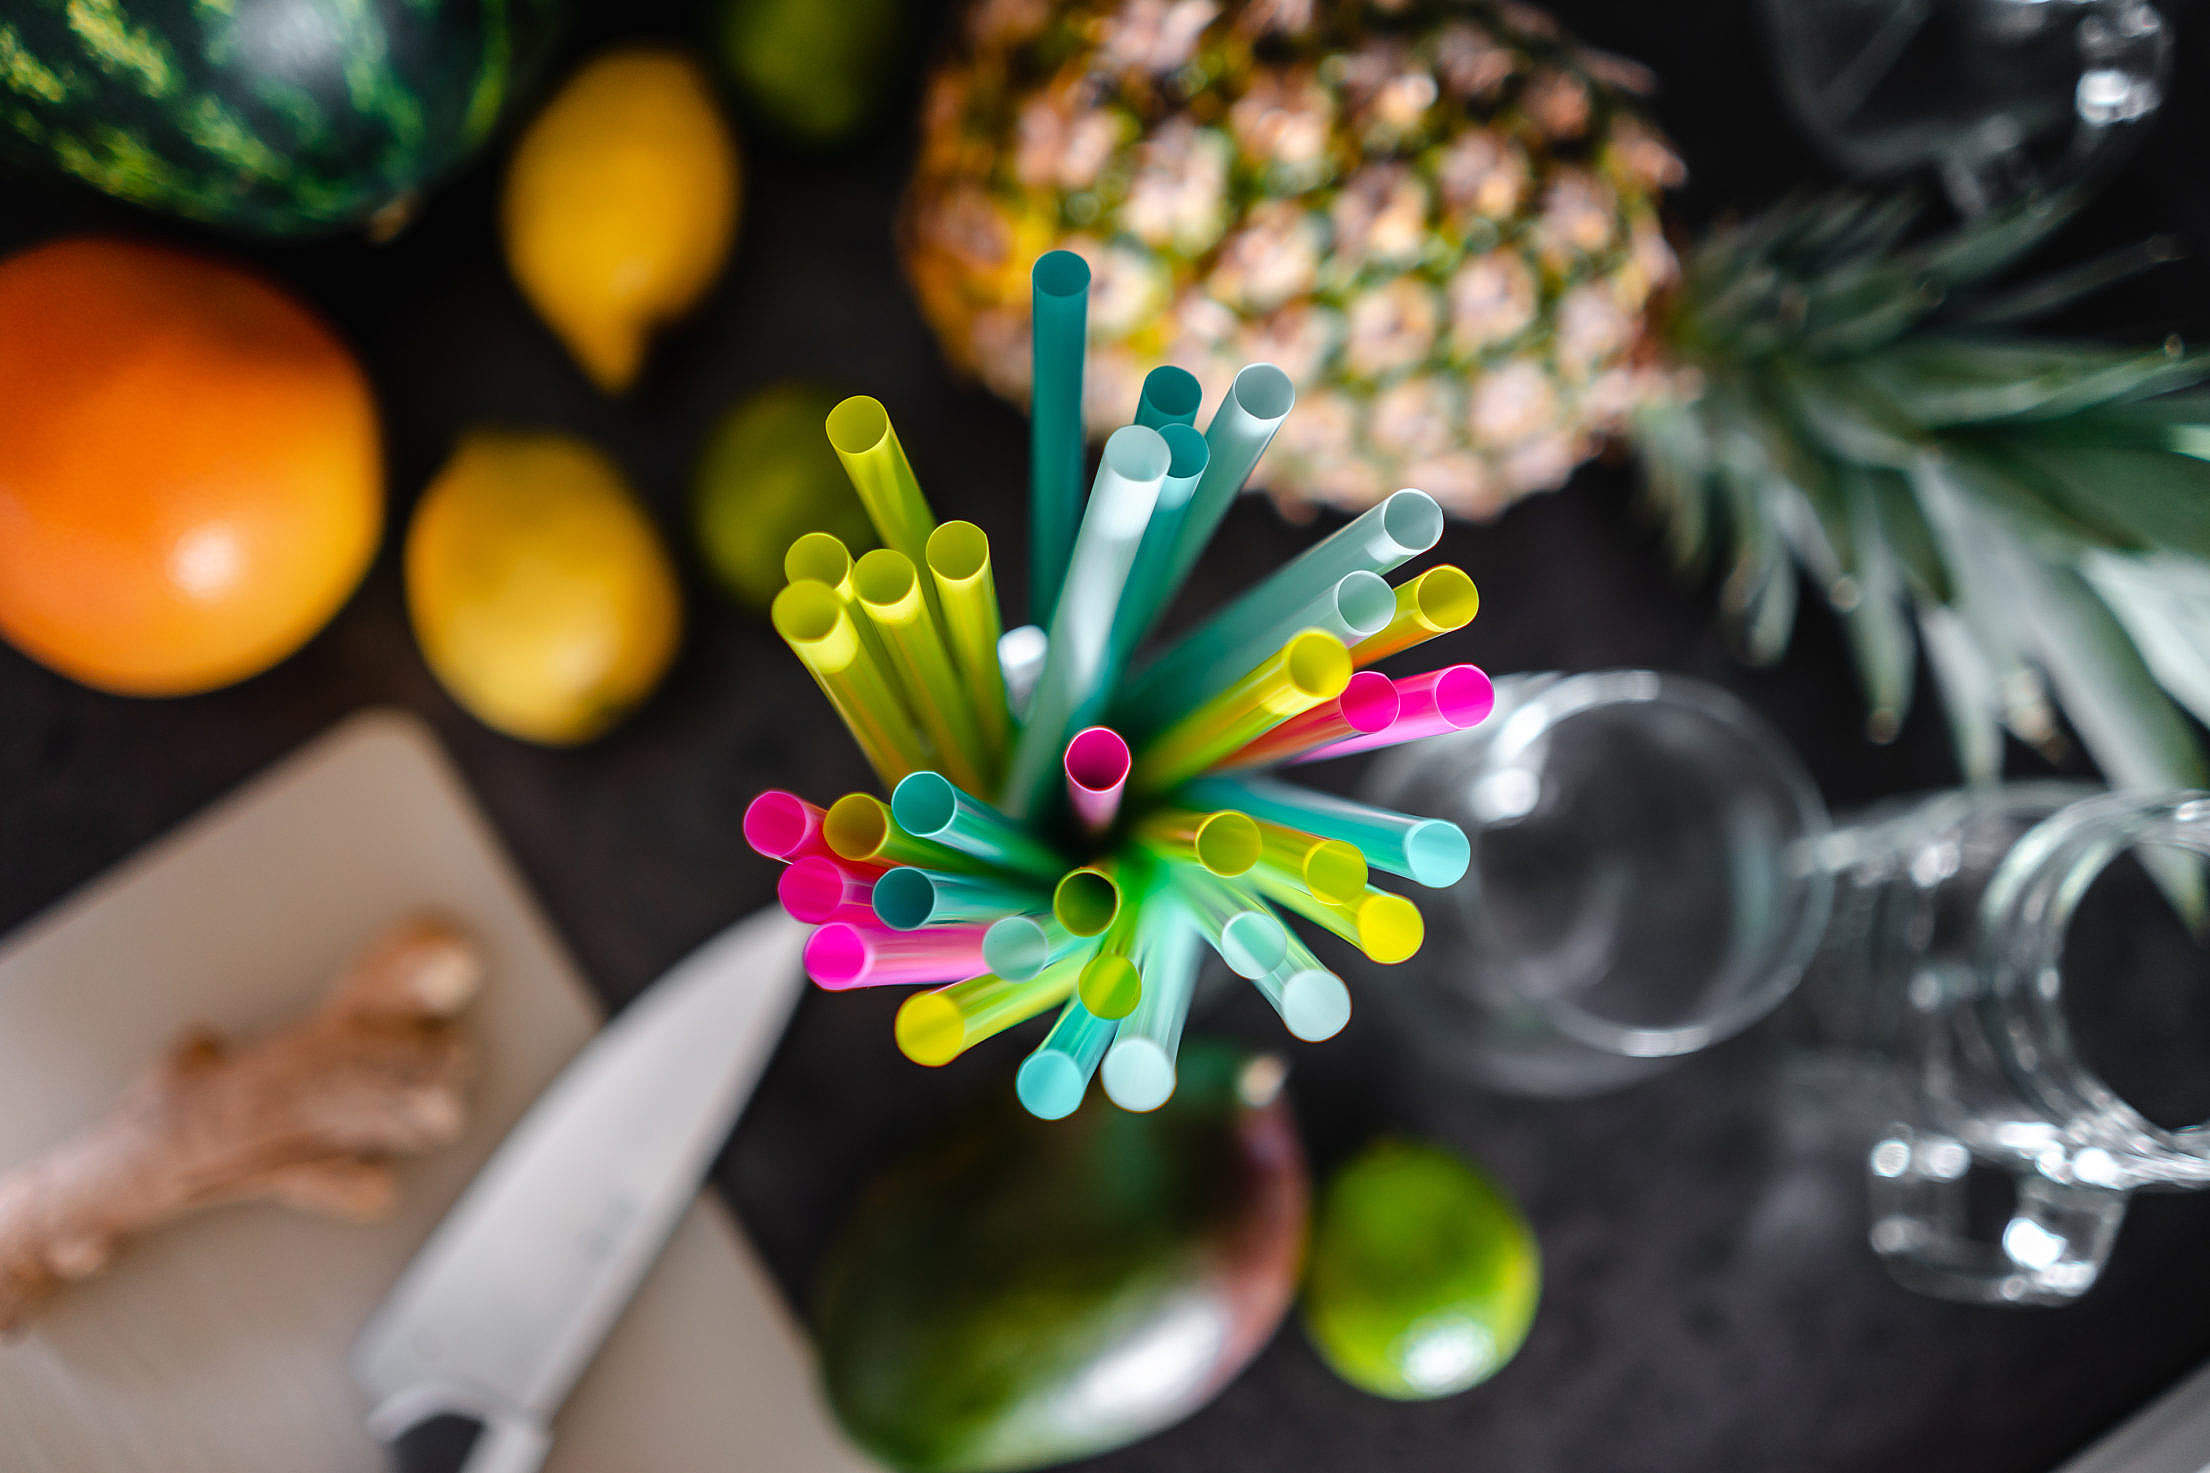 Colored Plastic Straws Ready for Party Free Stock Photo